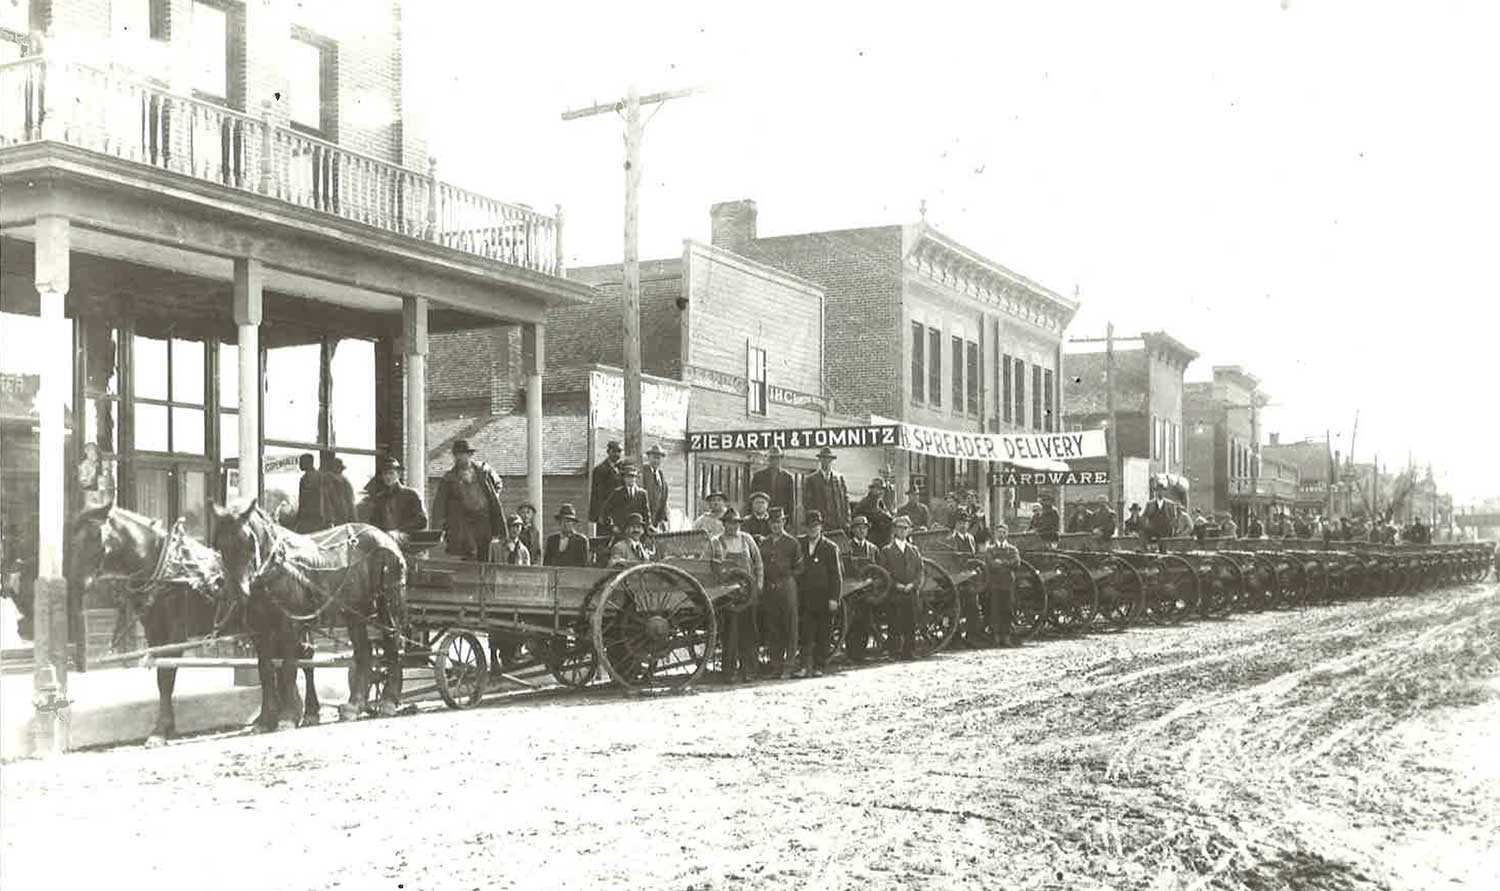 3. Manure Spreaders on River Street